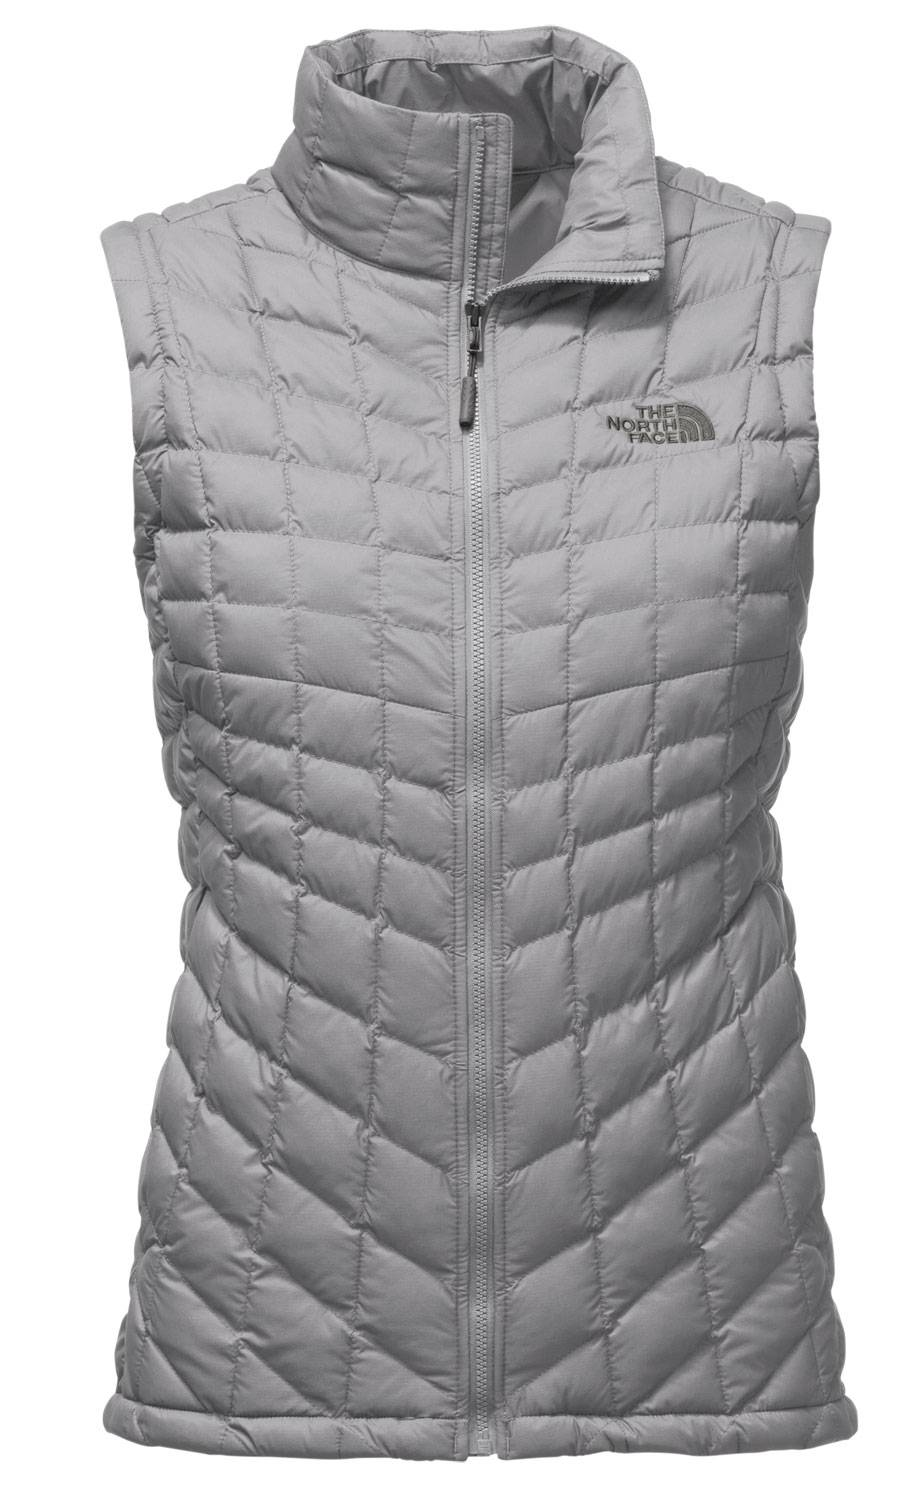 a6fa10a685 Style and function collide in The North Face ThermoBall Women s Vest. Made  with PrimaLoft synthetic insulation to trap heat within small air pockets  to ...